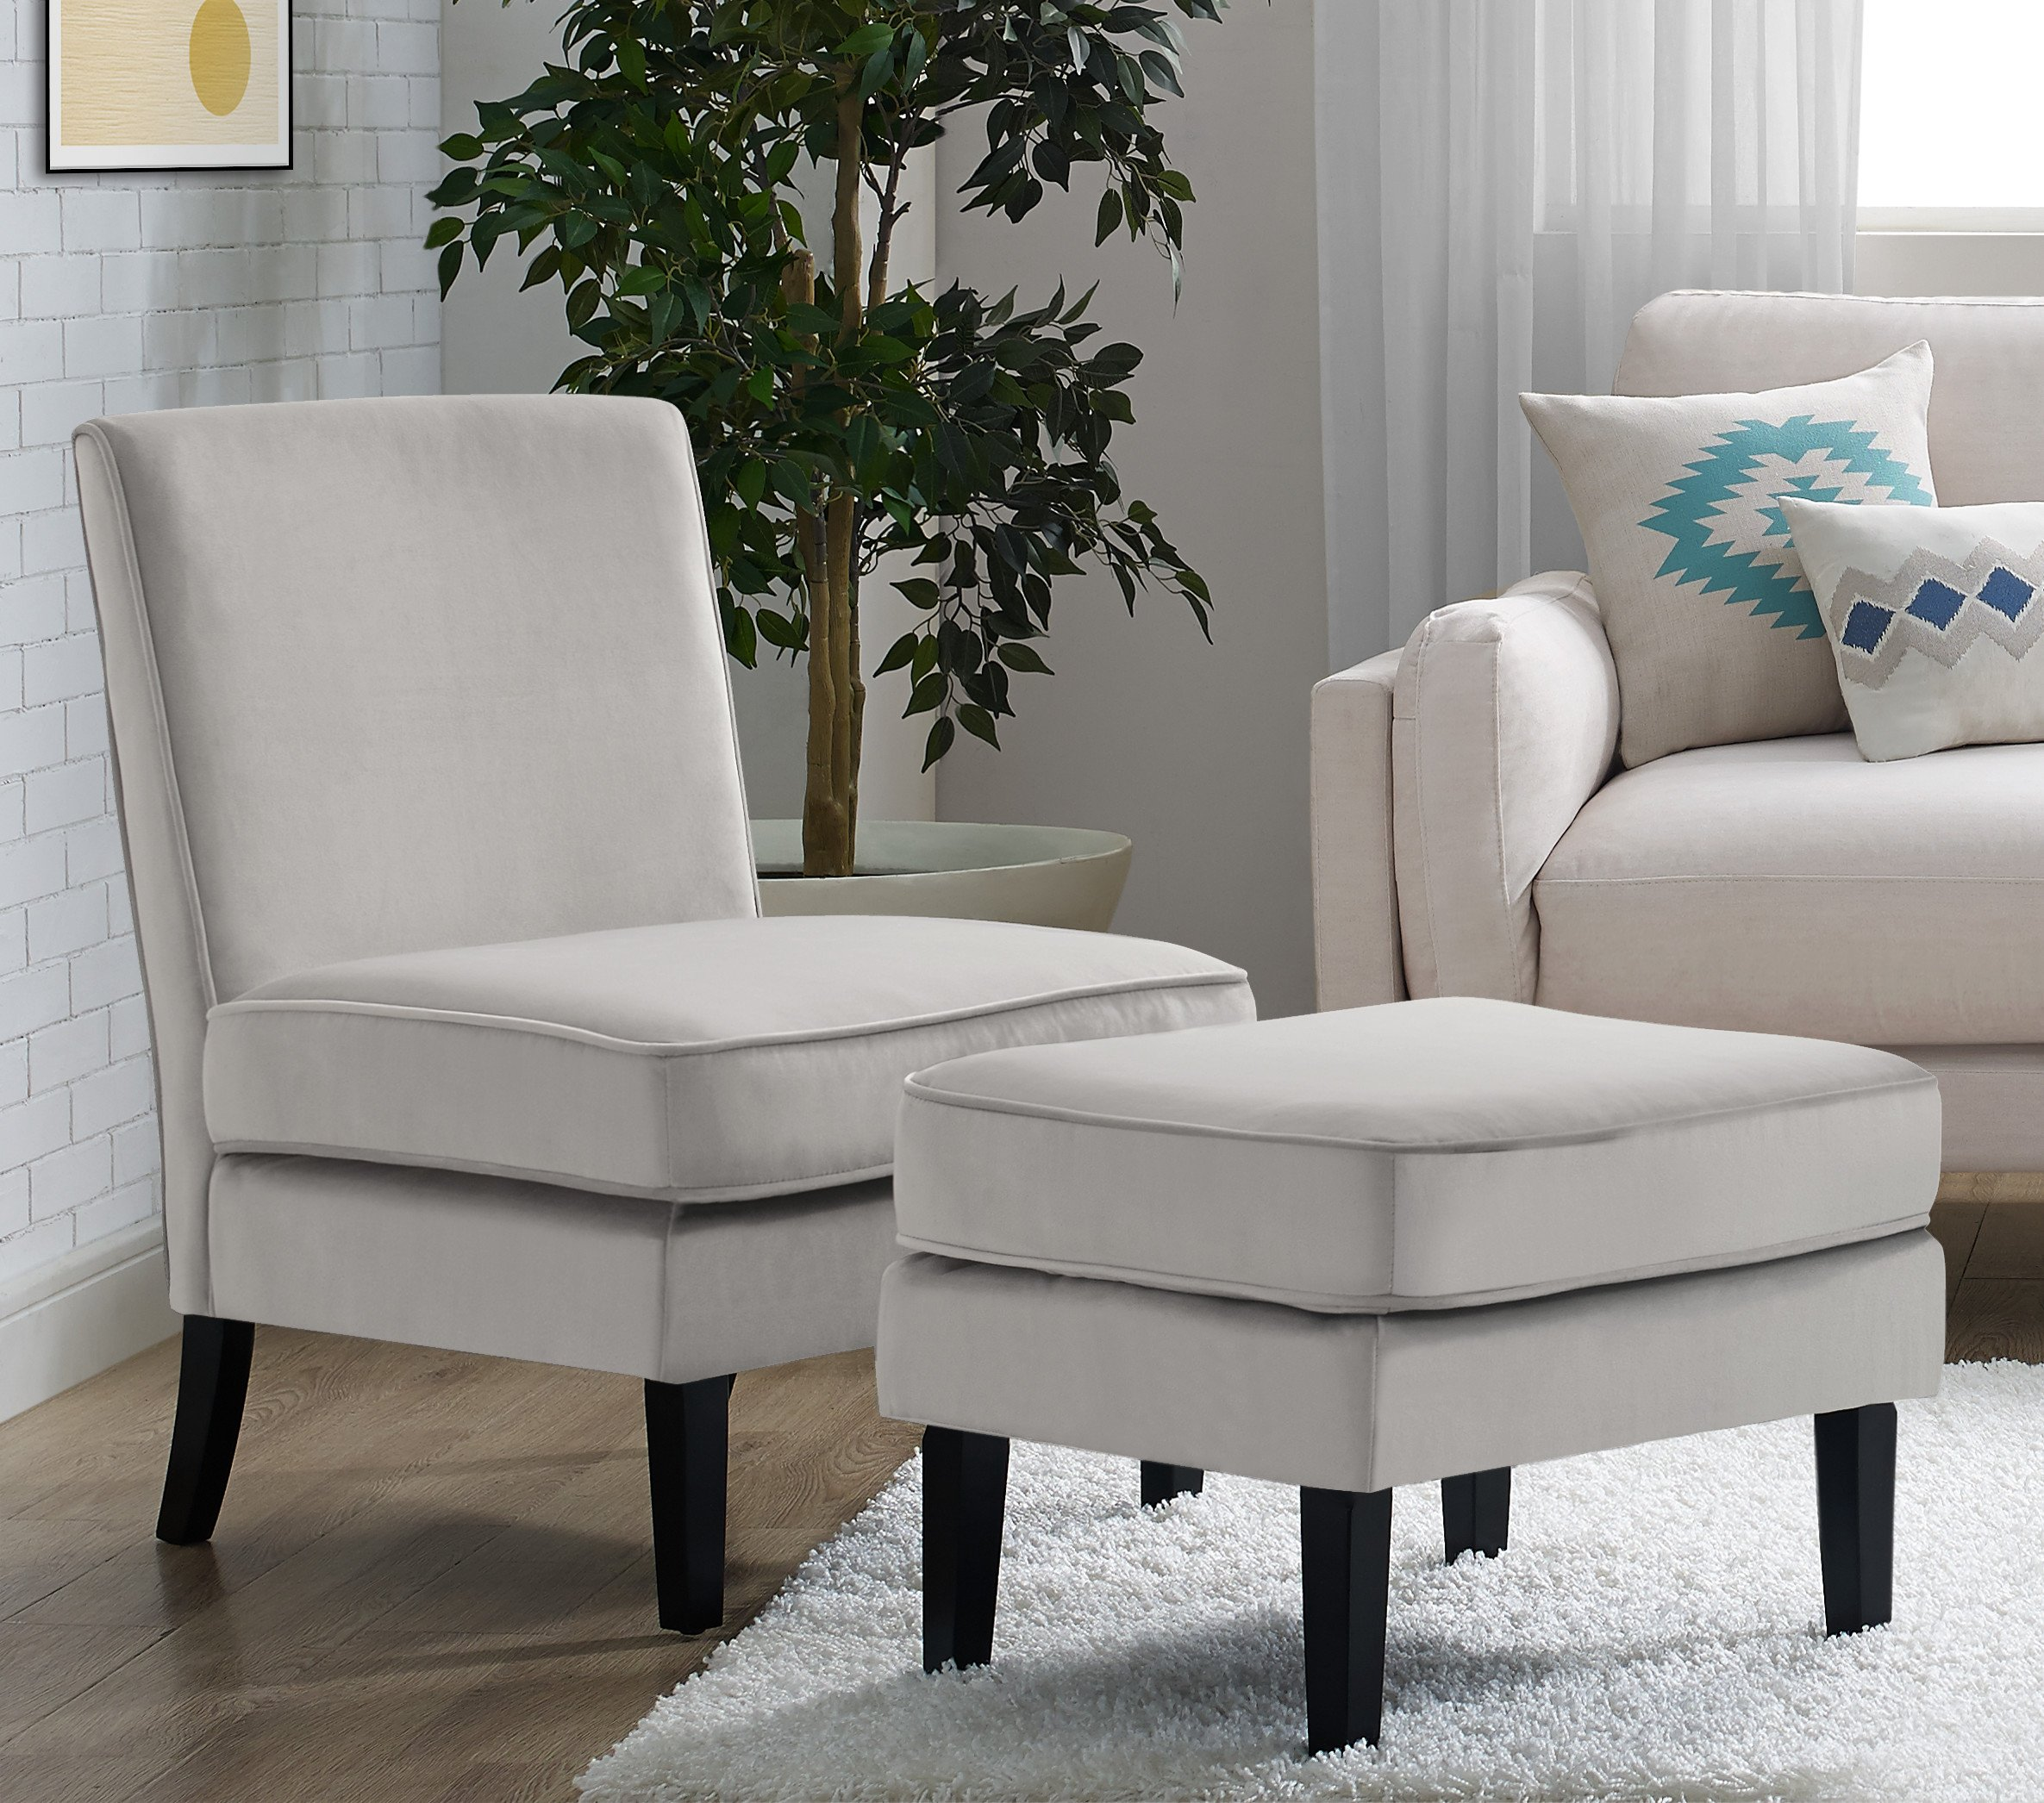 Best Rated In Living Room Furniture Sets & Helpful